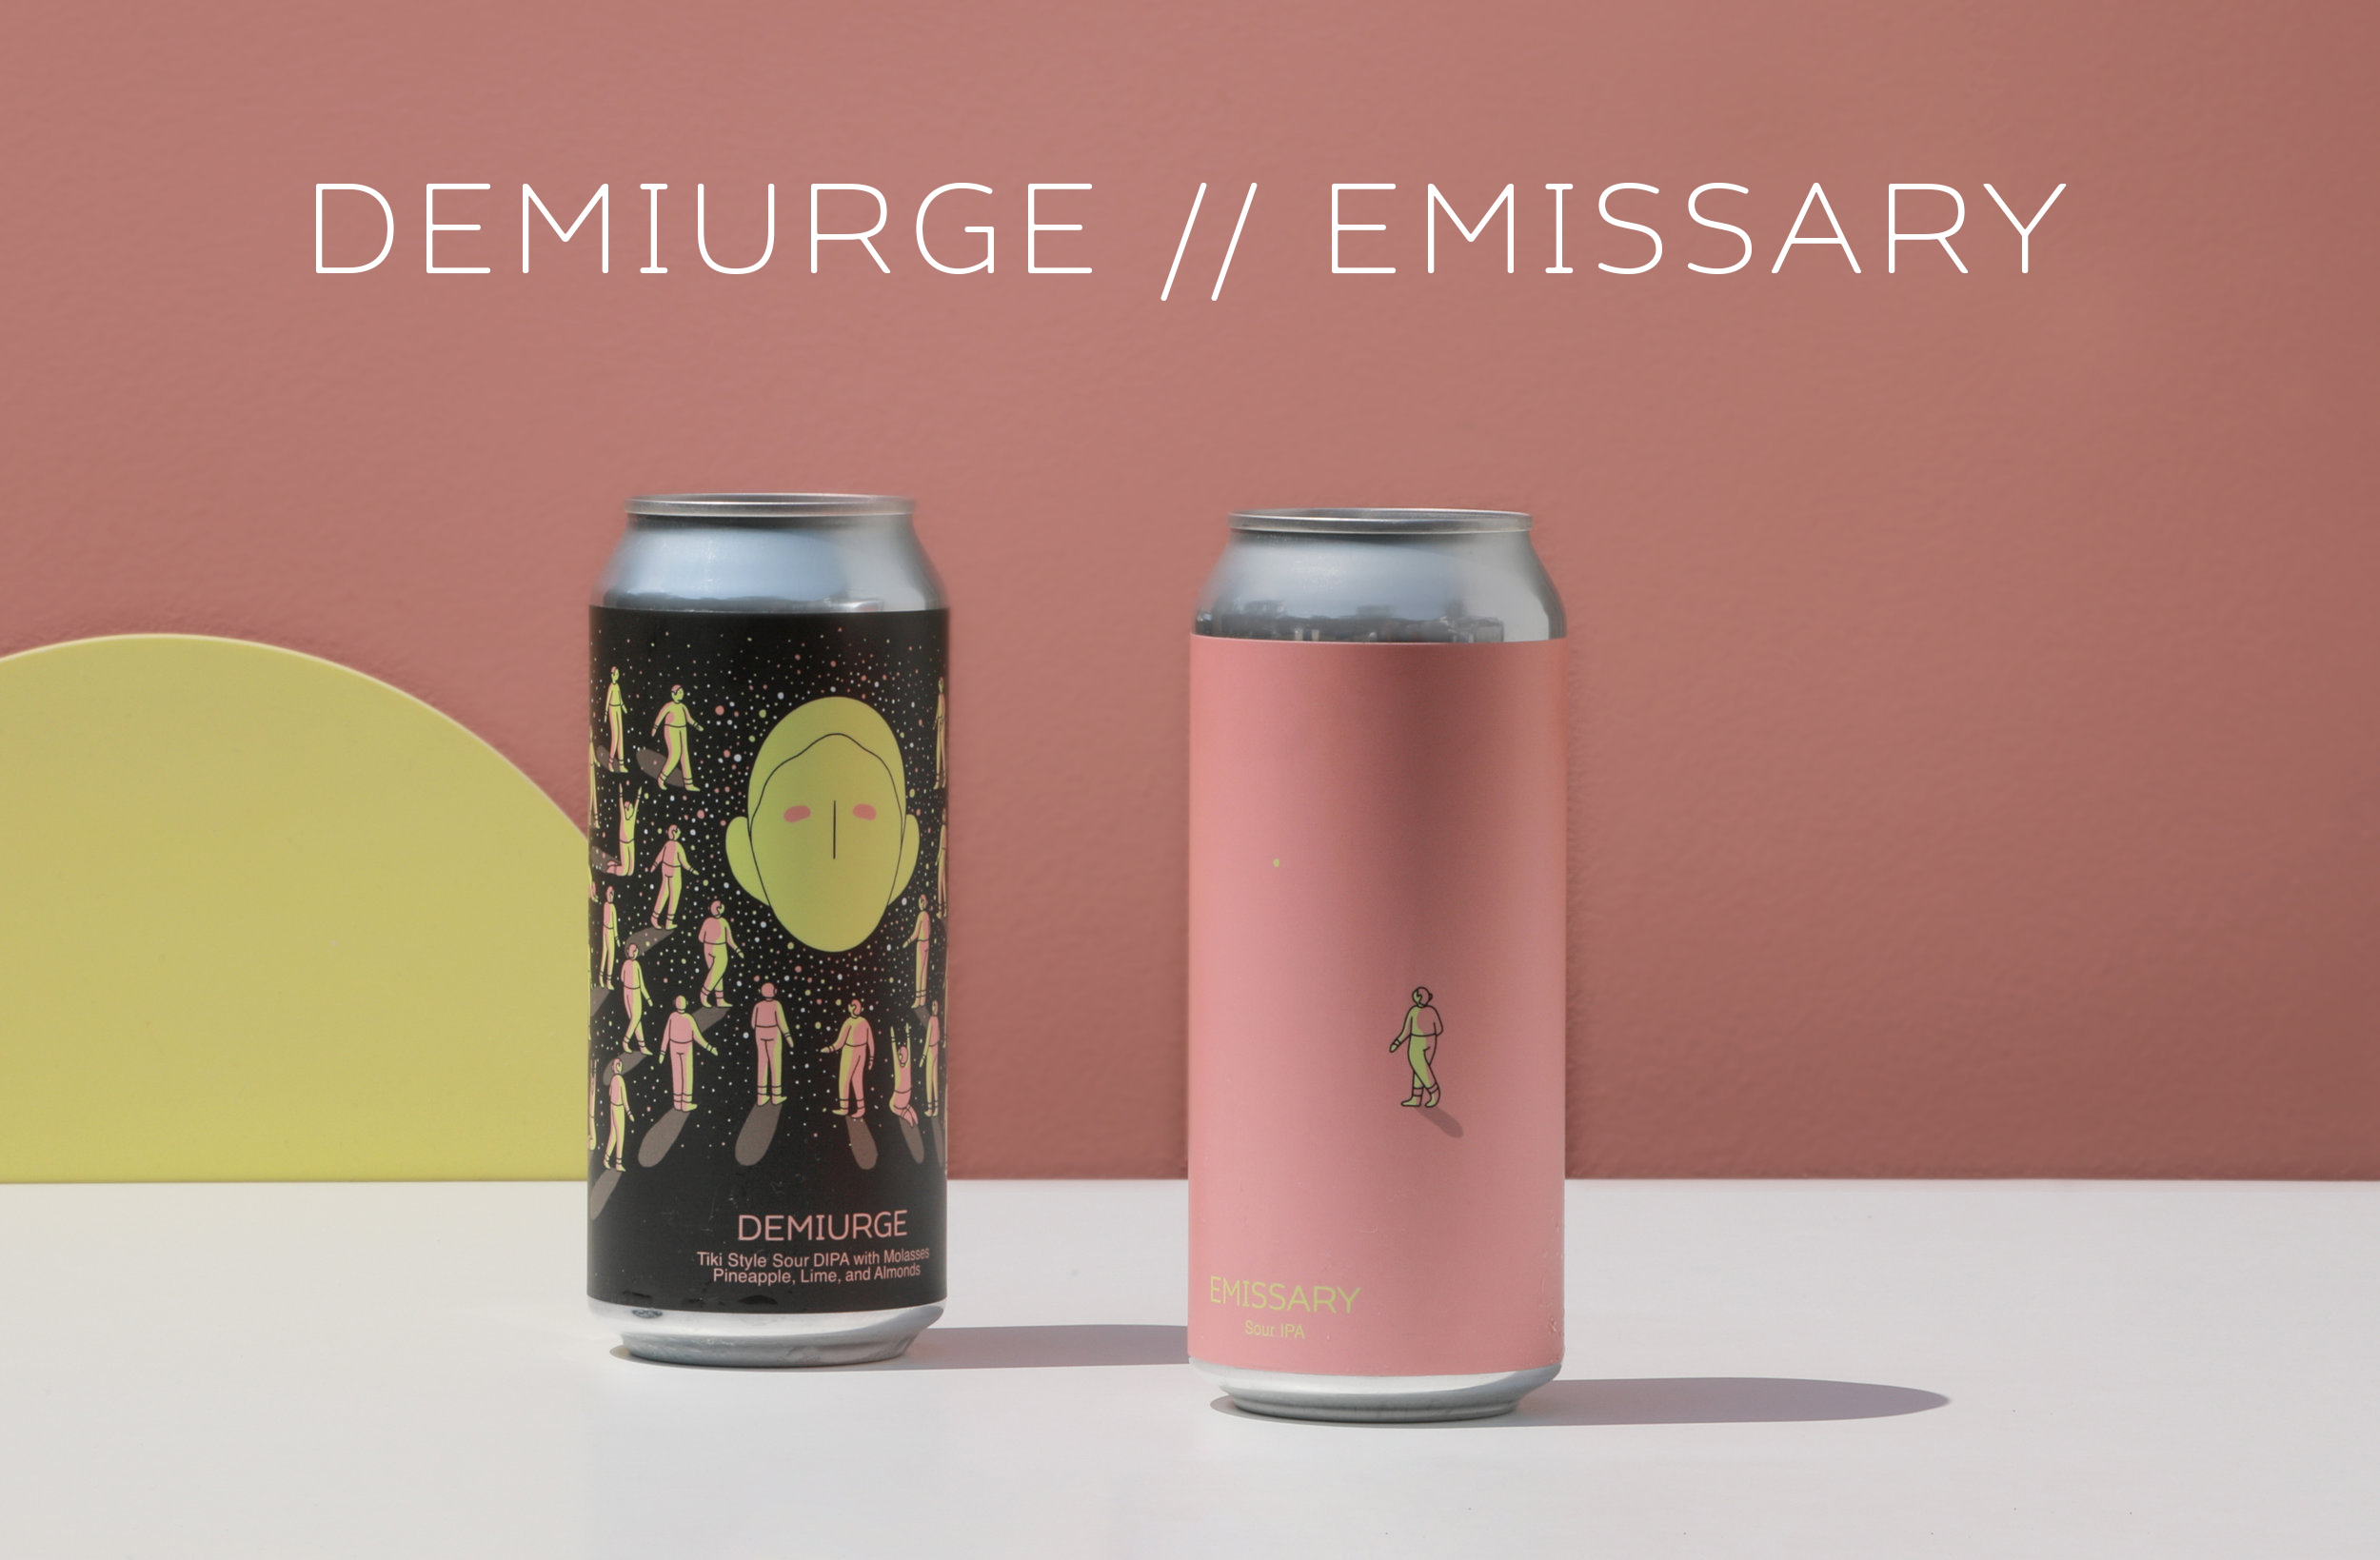 Photo of Demiurge and Emissary Cans